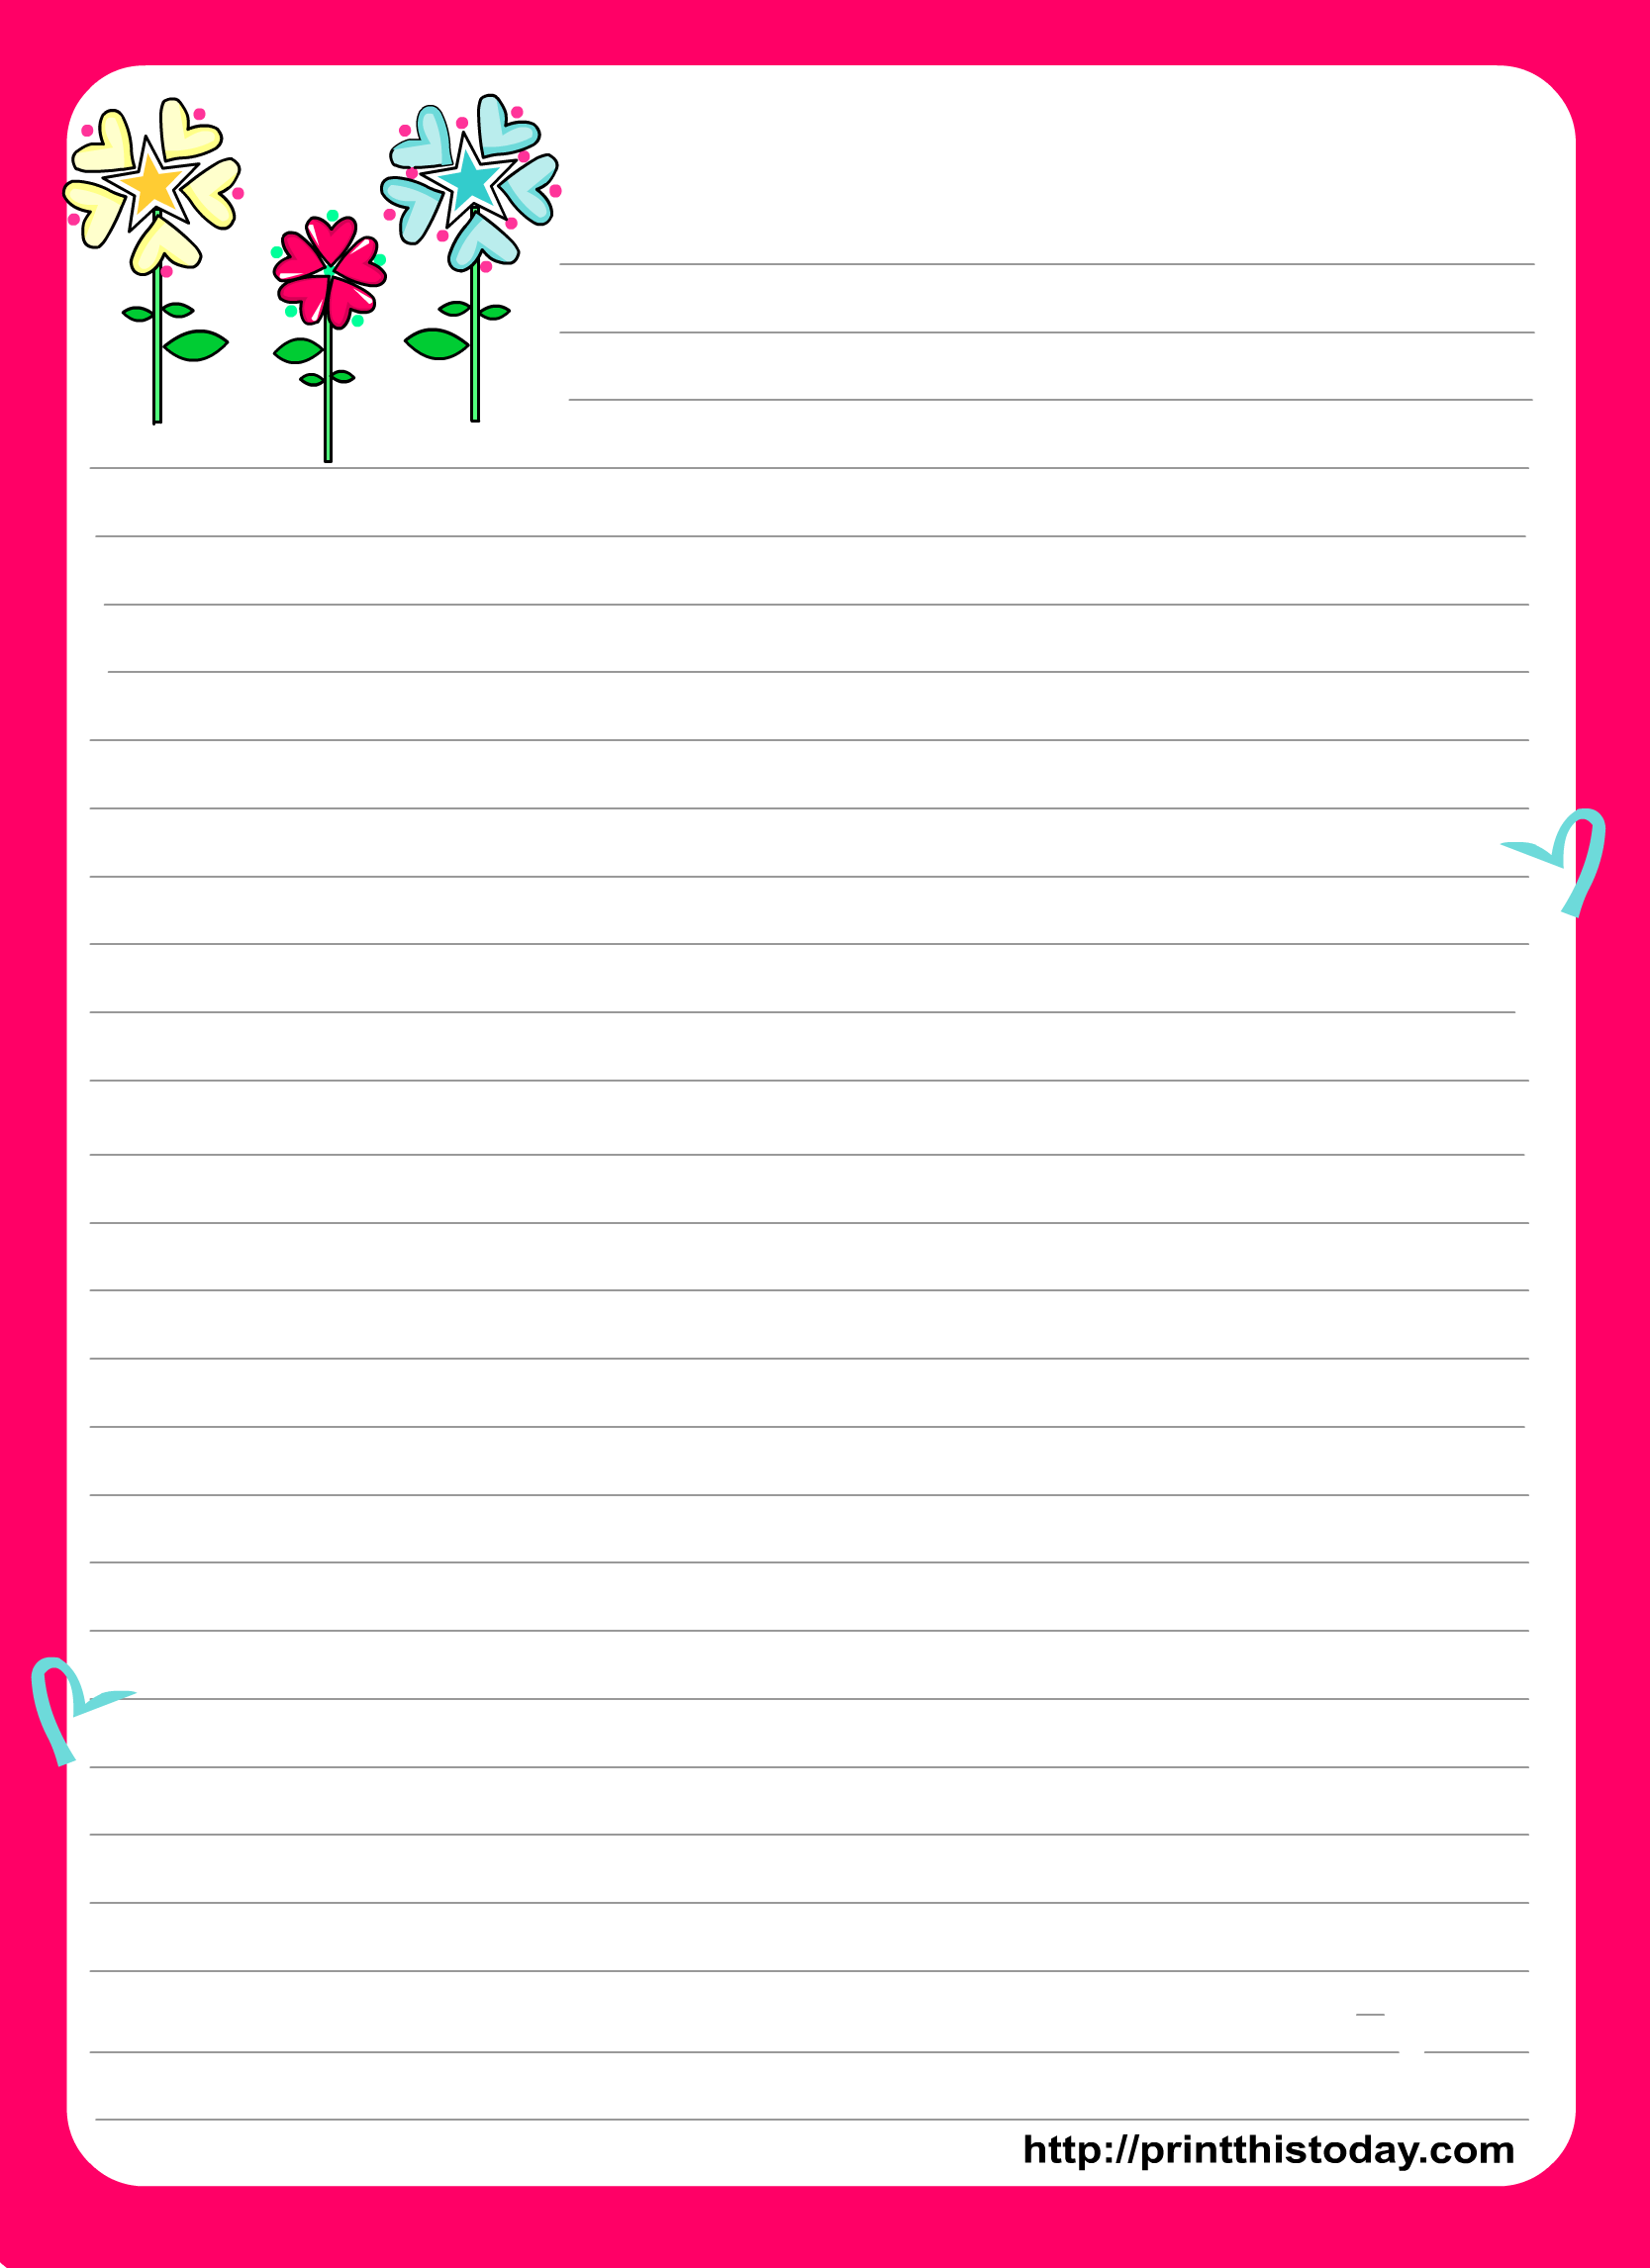 Pad clipart letter pad. Love stationery design with